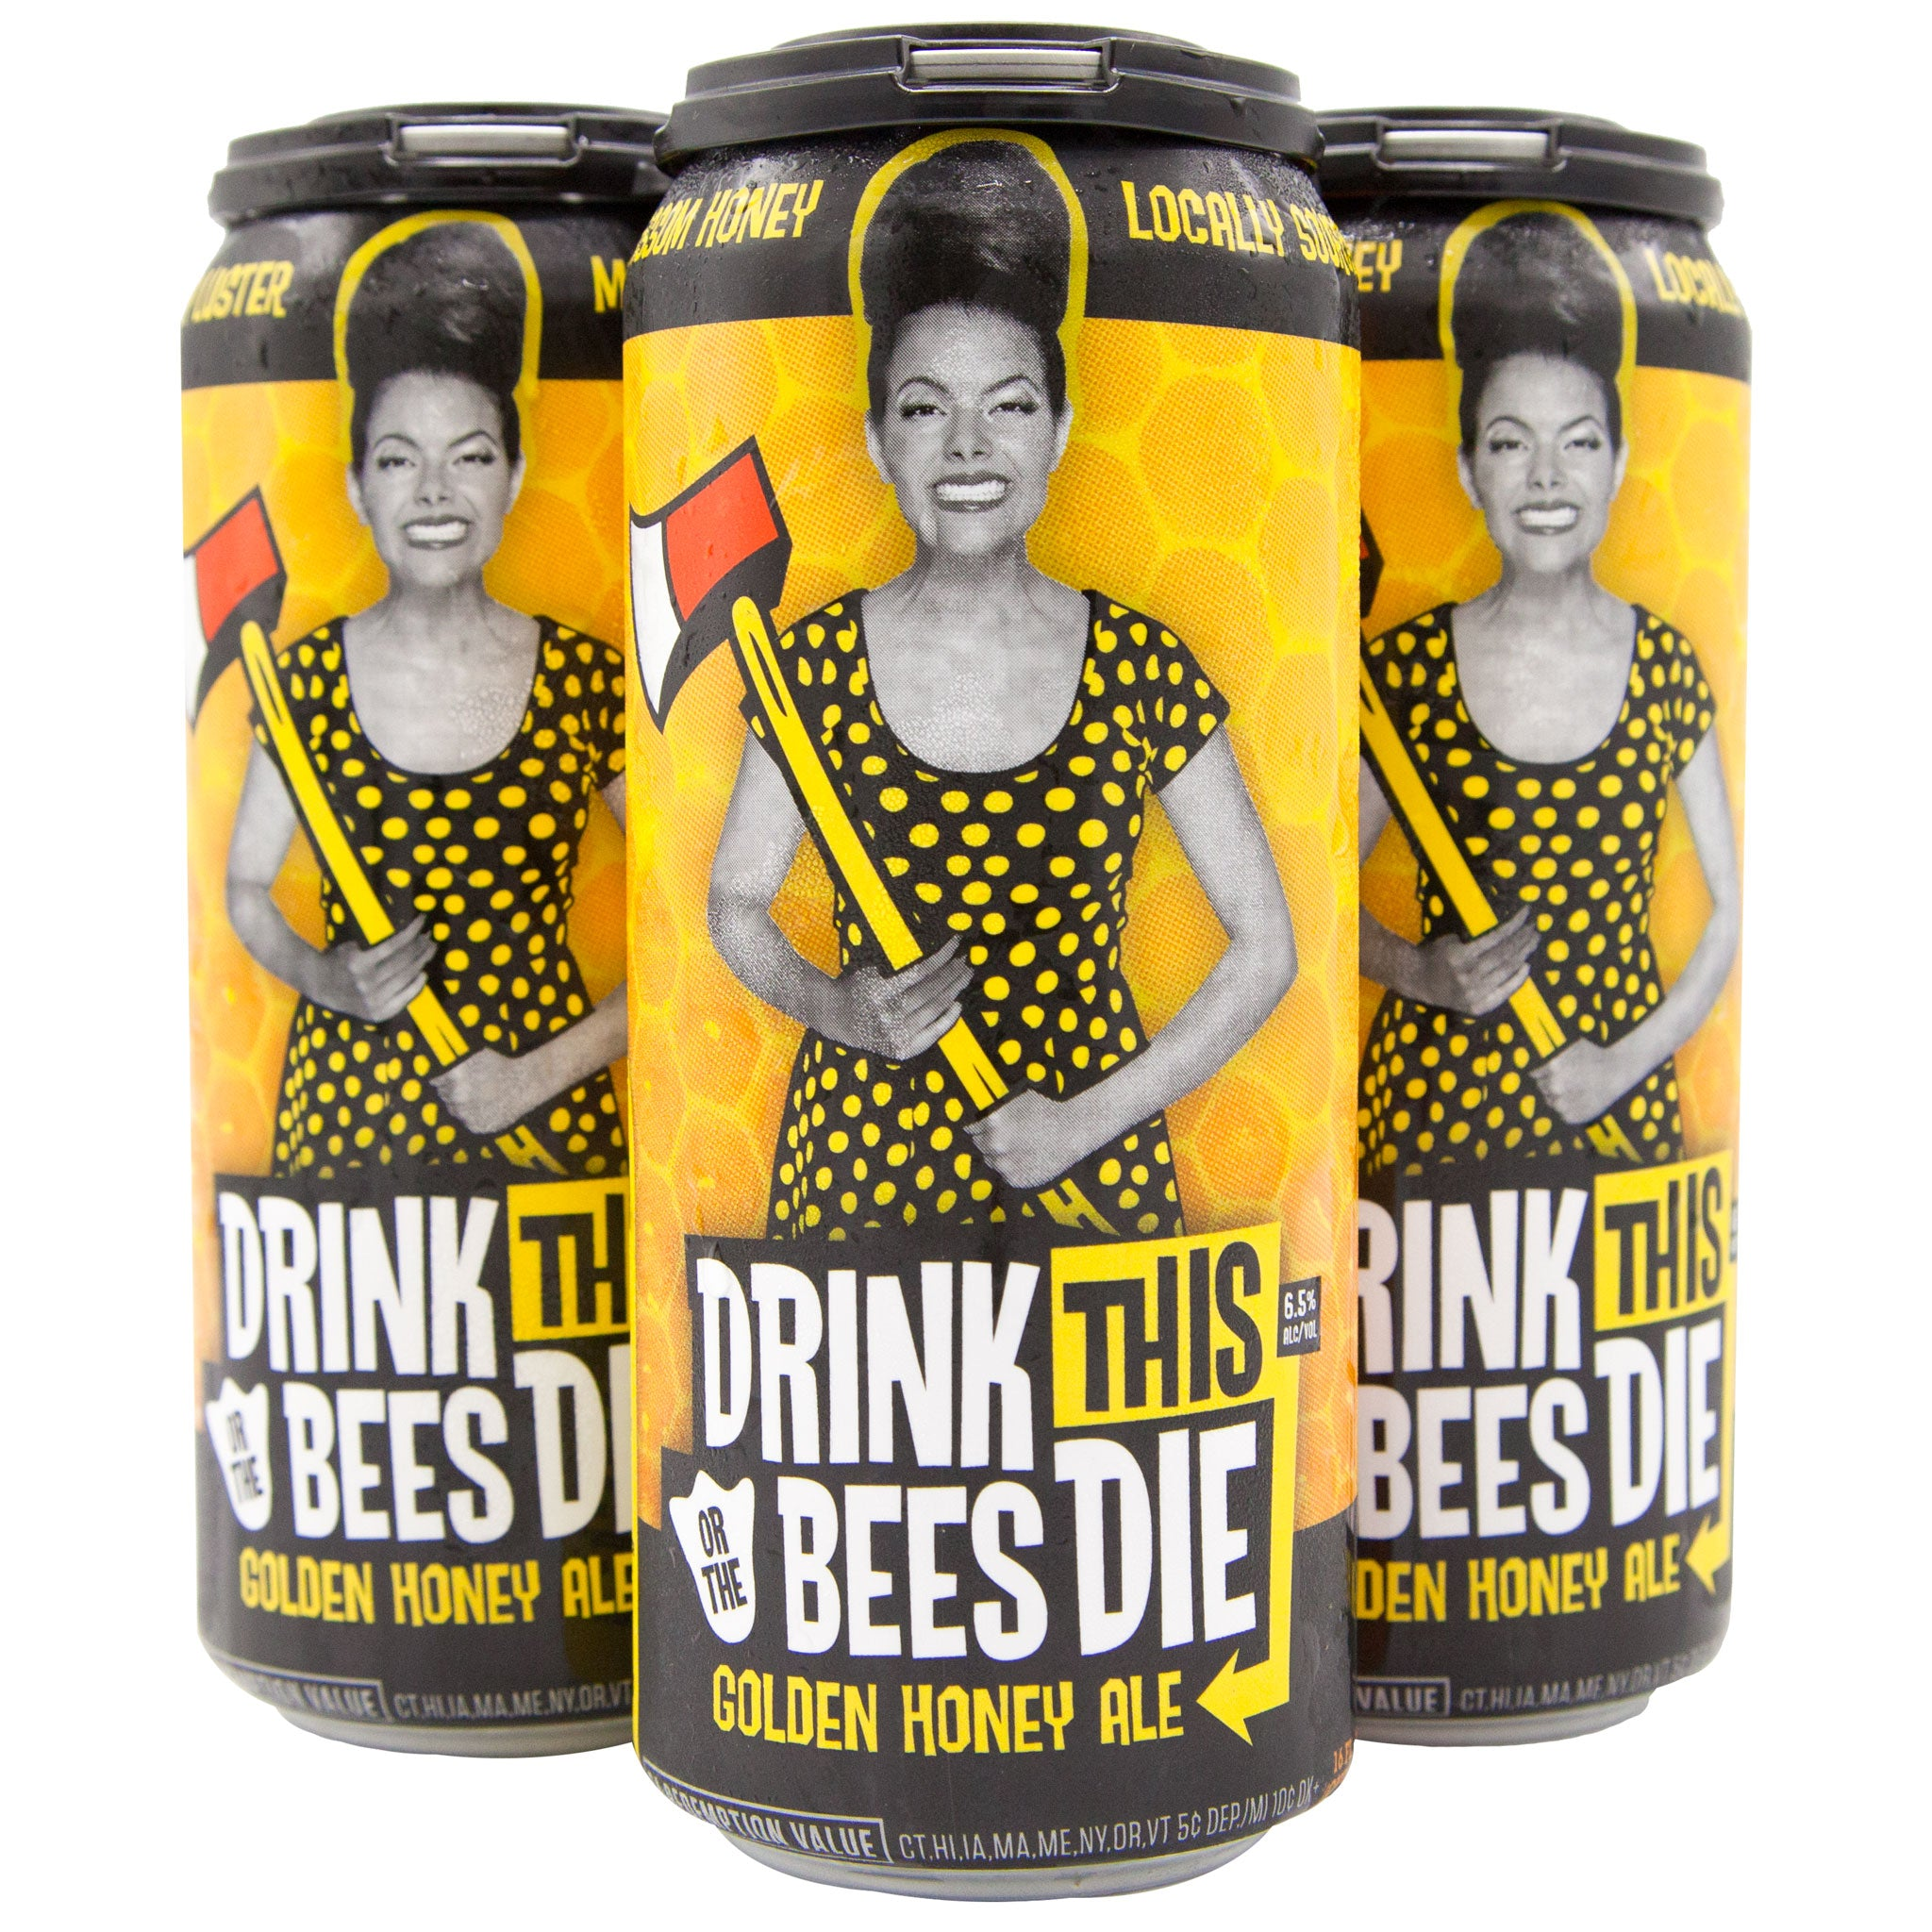 Drink This or the Bees Die (4 Pack of 16oz Cans)